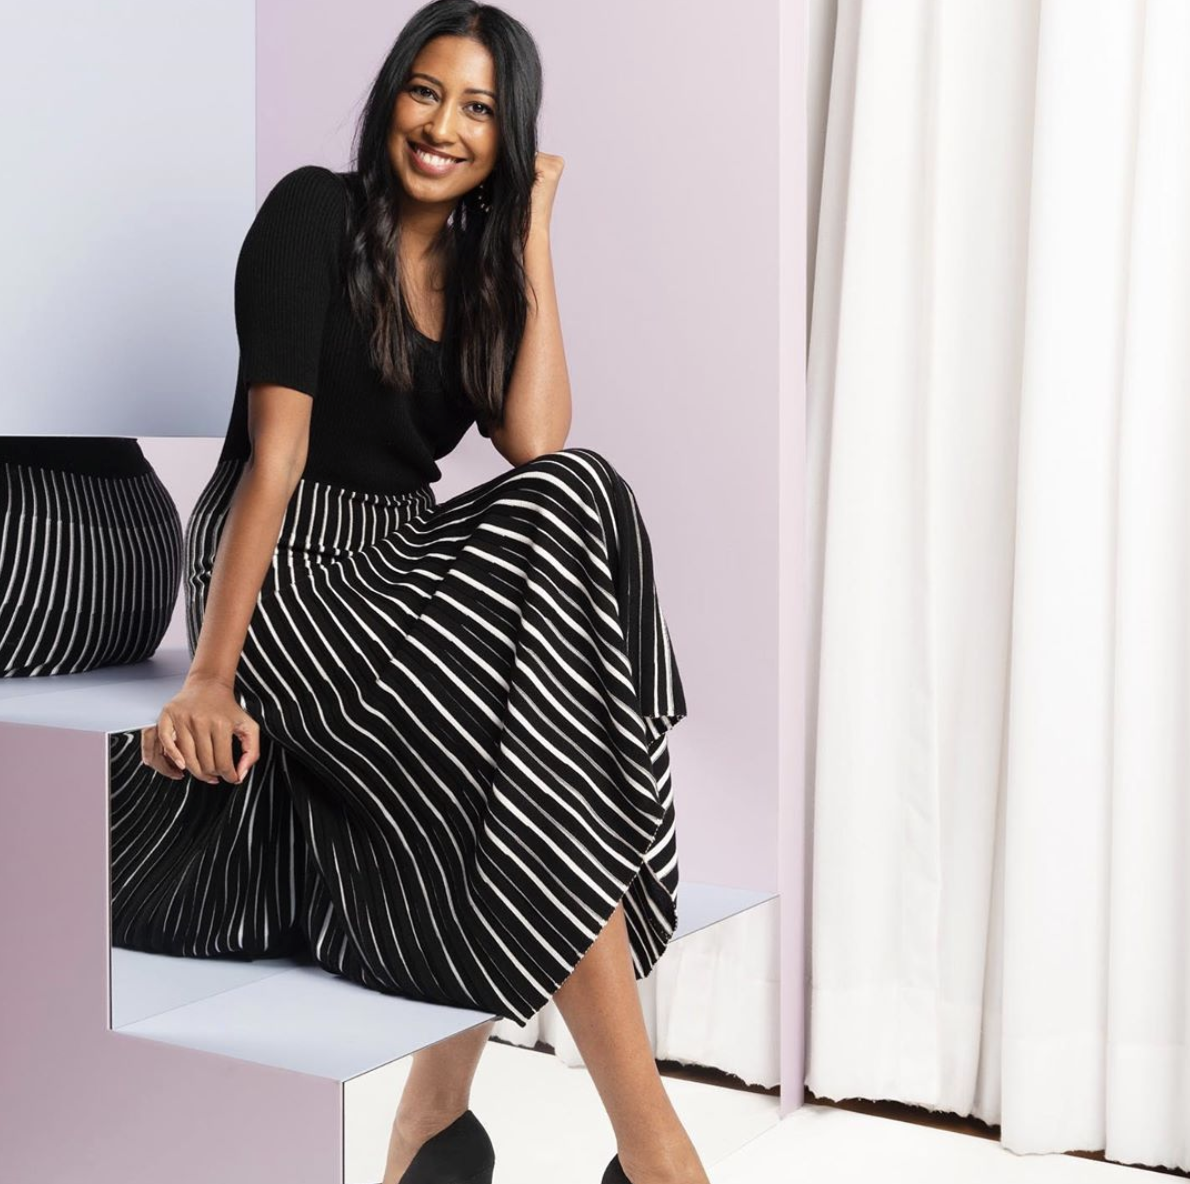 Tina Abeysekara - Hydrologist turned trained Stylist, Tina has created a massive online blog that focuses on affordable fashion that makes you feel a million dollars for under $150!WEBSITE | INSTAGRAM